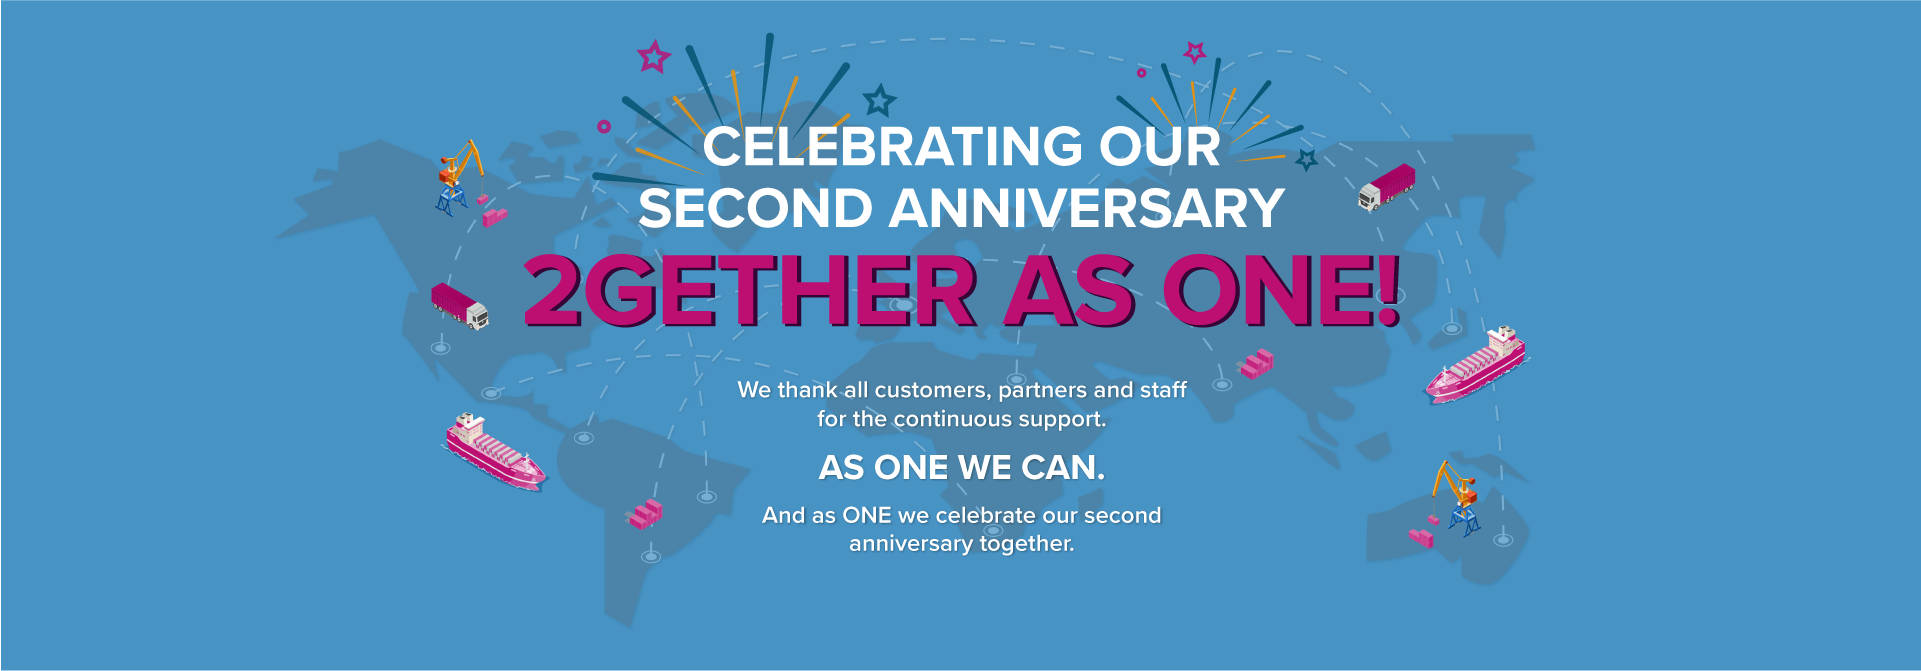 ONE-SecondAnniversary_BannerSite_English